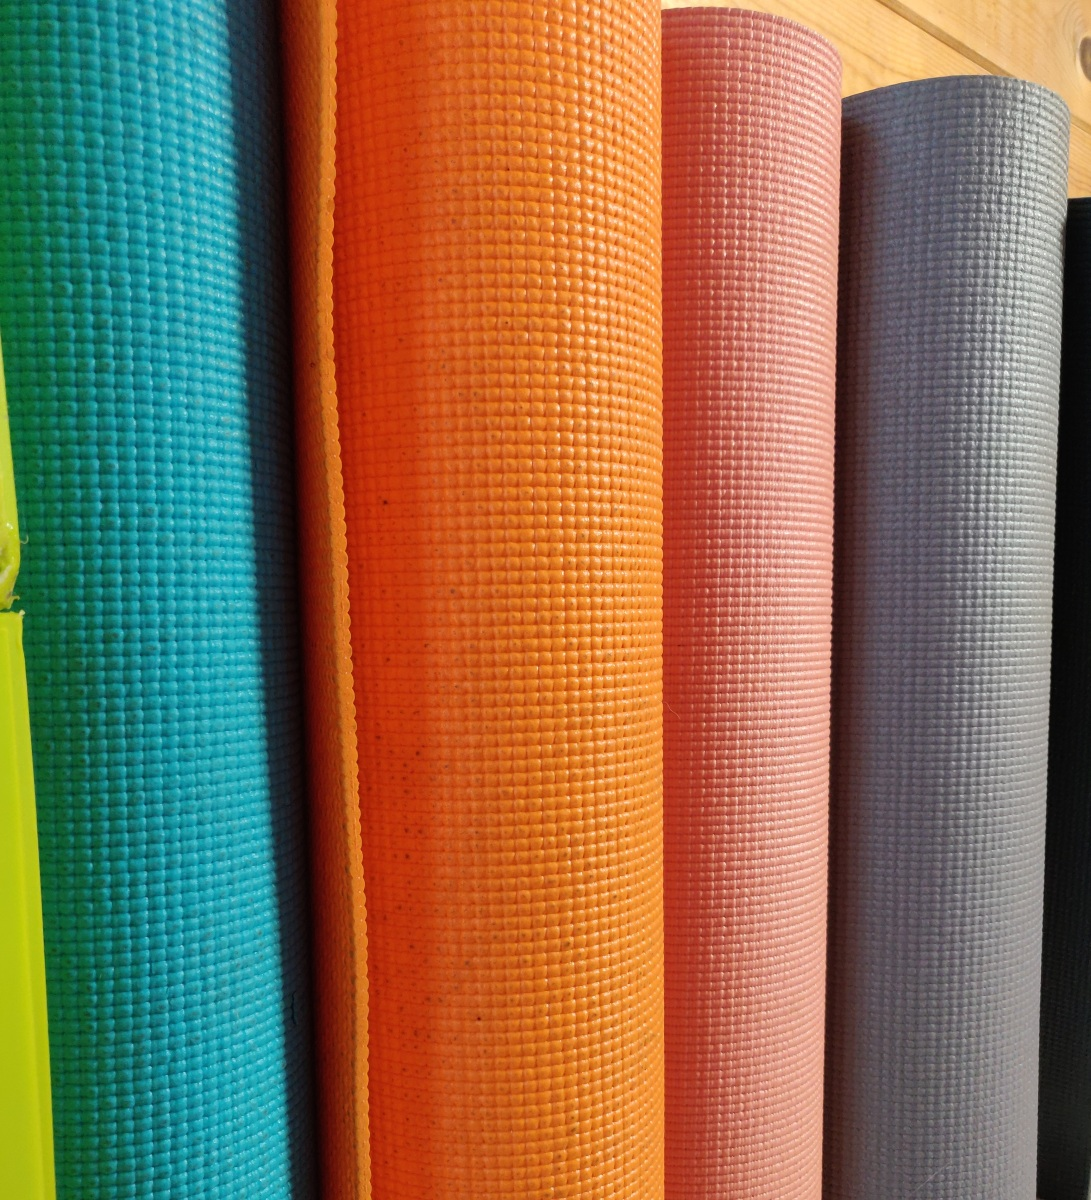 Rolled up yoga mats of all colours standing in a row